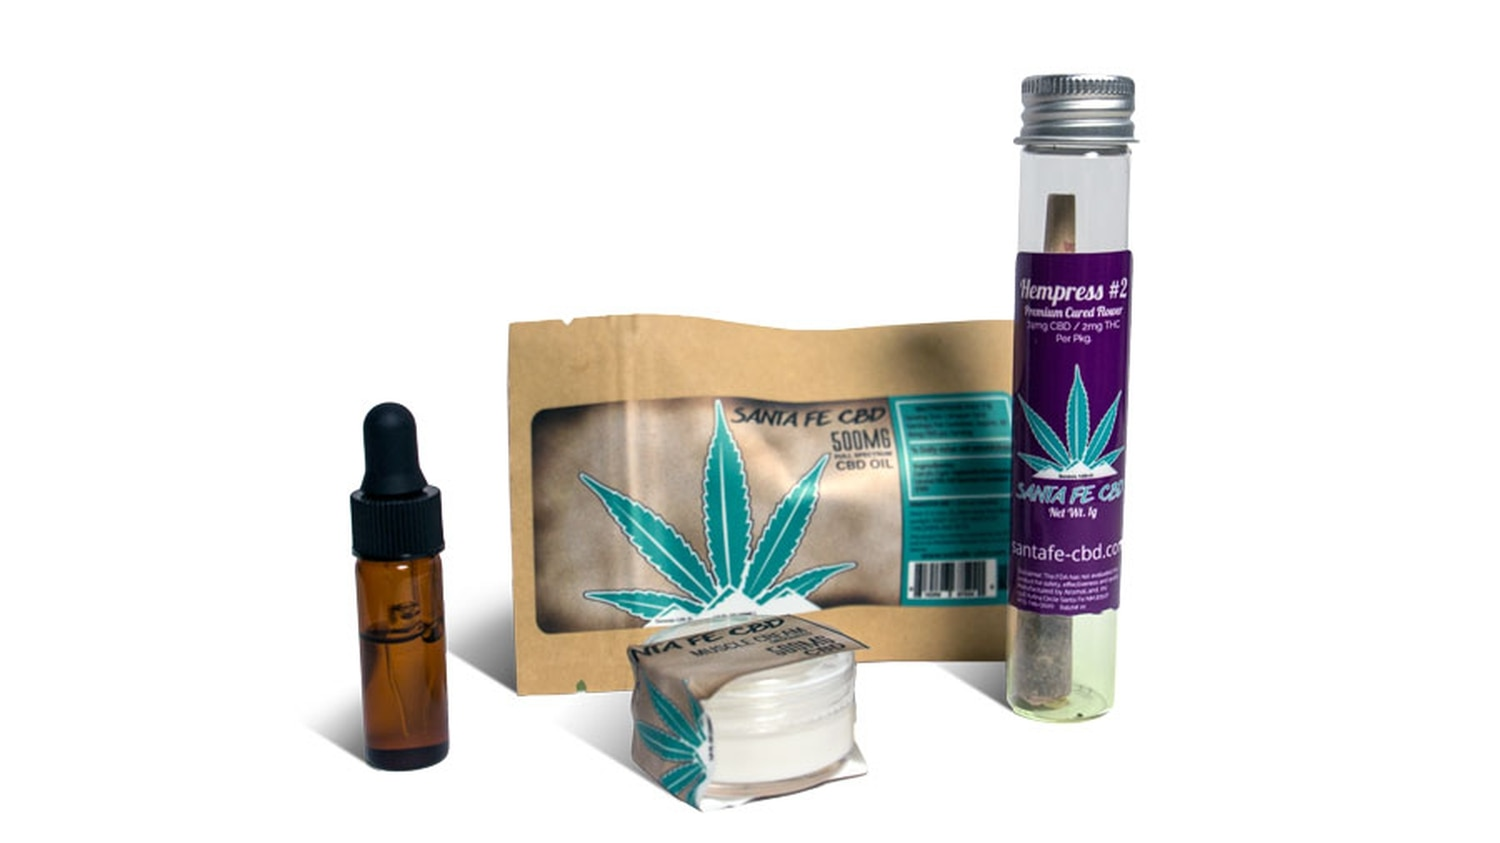 Santa Fe CBD grows the hemp for its products in Northern New Mexico and manufactures several products at Aromaland in Santa Fe.